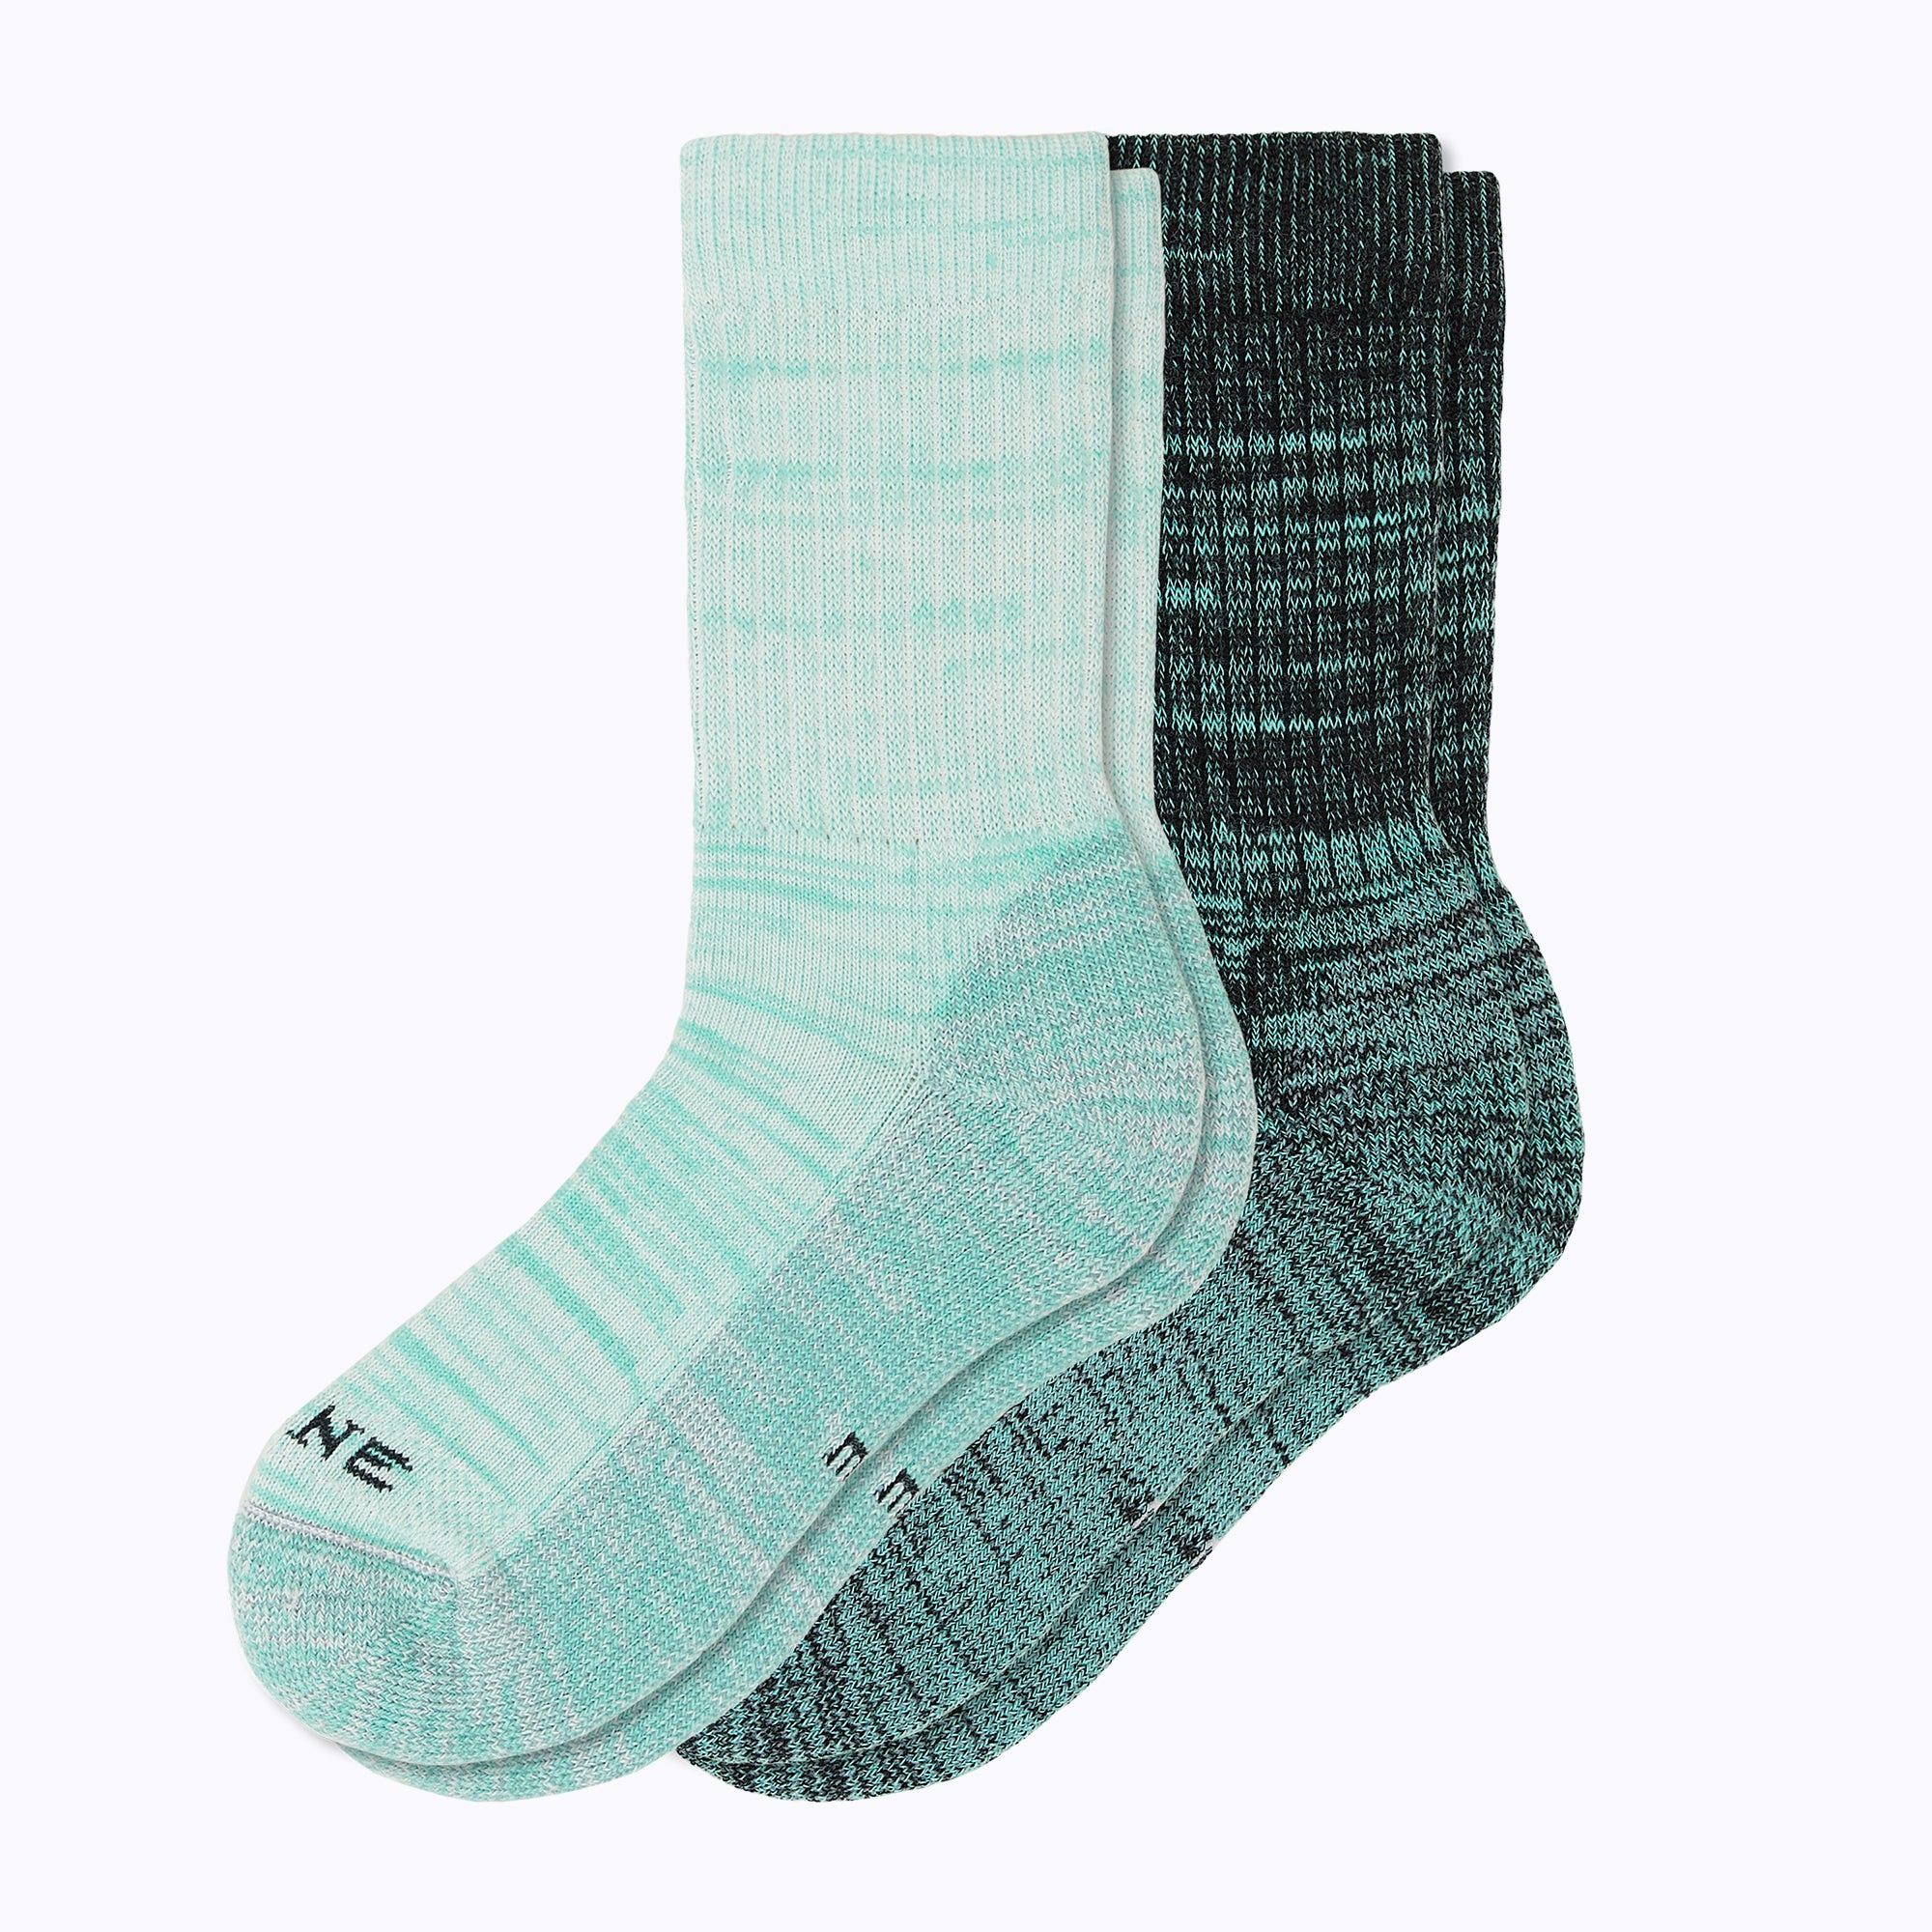 Kelsey 2 Pack Mix Women's Crew Socks - Mix by Canyon x Lane Socks